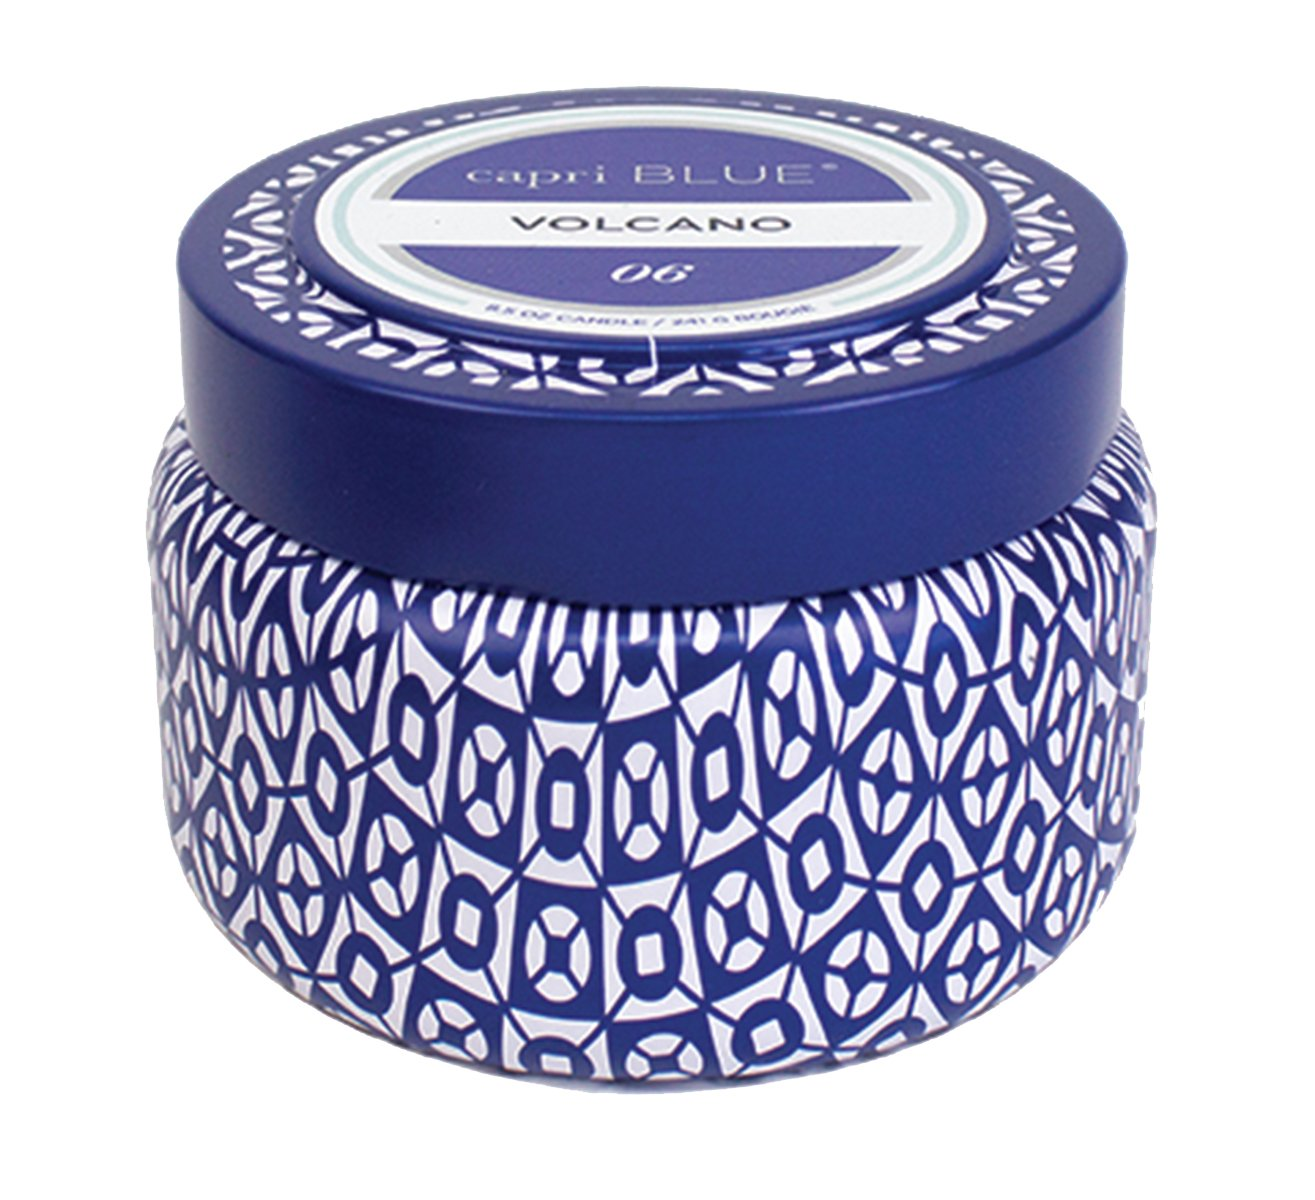 "Capri Blue Volcano Printed Travel Tin Candle, 8.5 Ounce - 35 hours of burn time Measures 3"" x 3.25"" 8.5 oz. Weight - living-room-decor, living-room, candles - 71uimoQSW%2BL -"